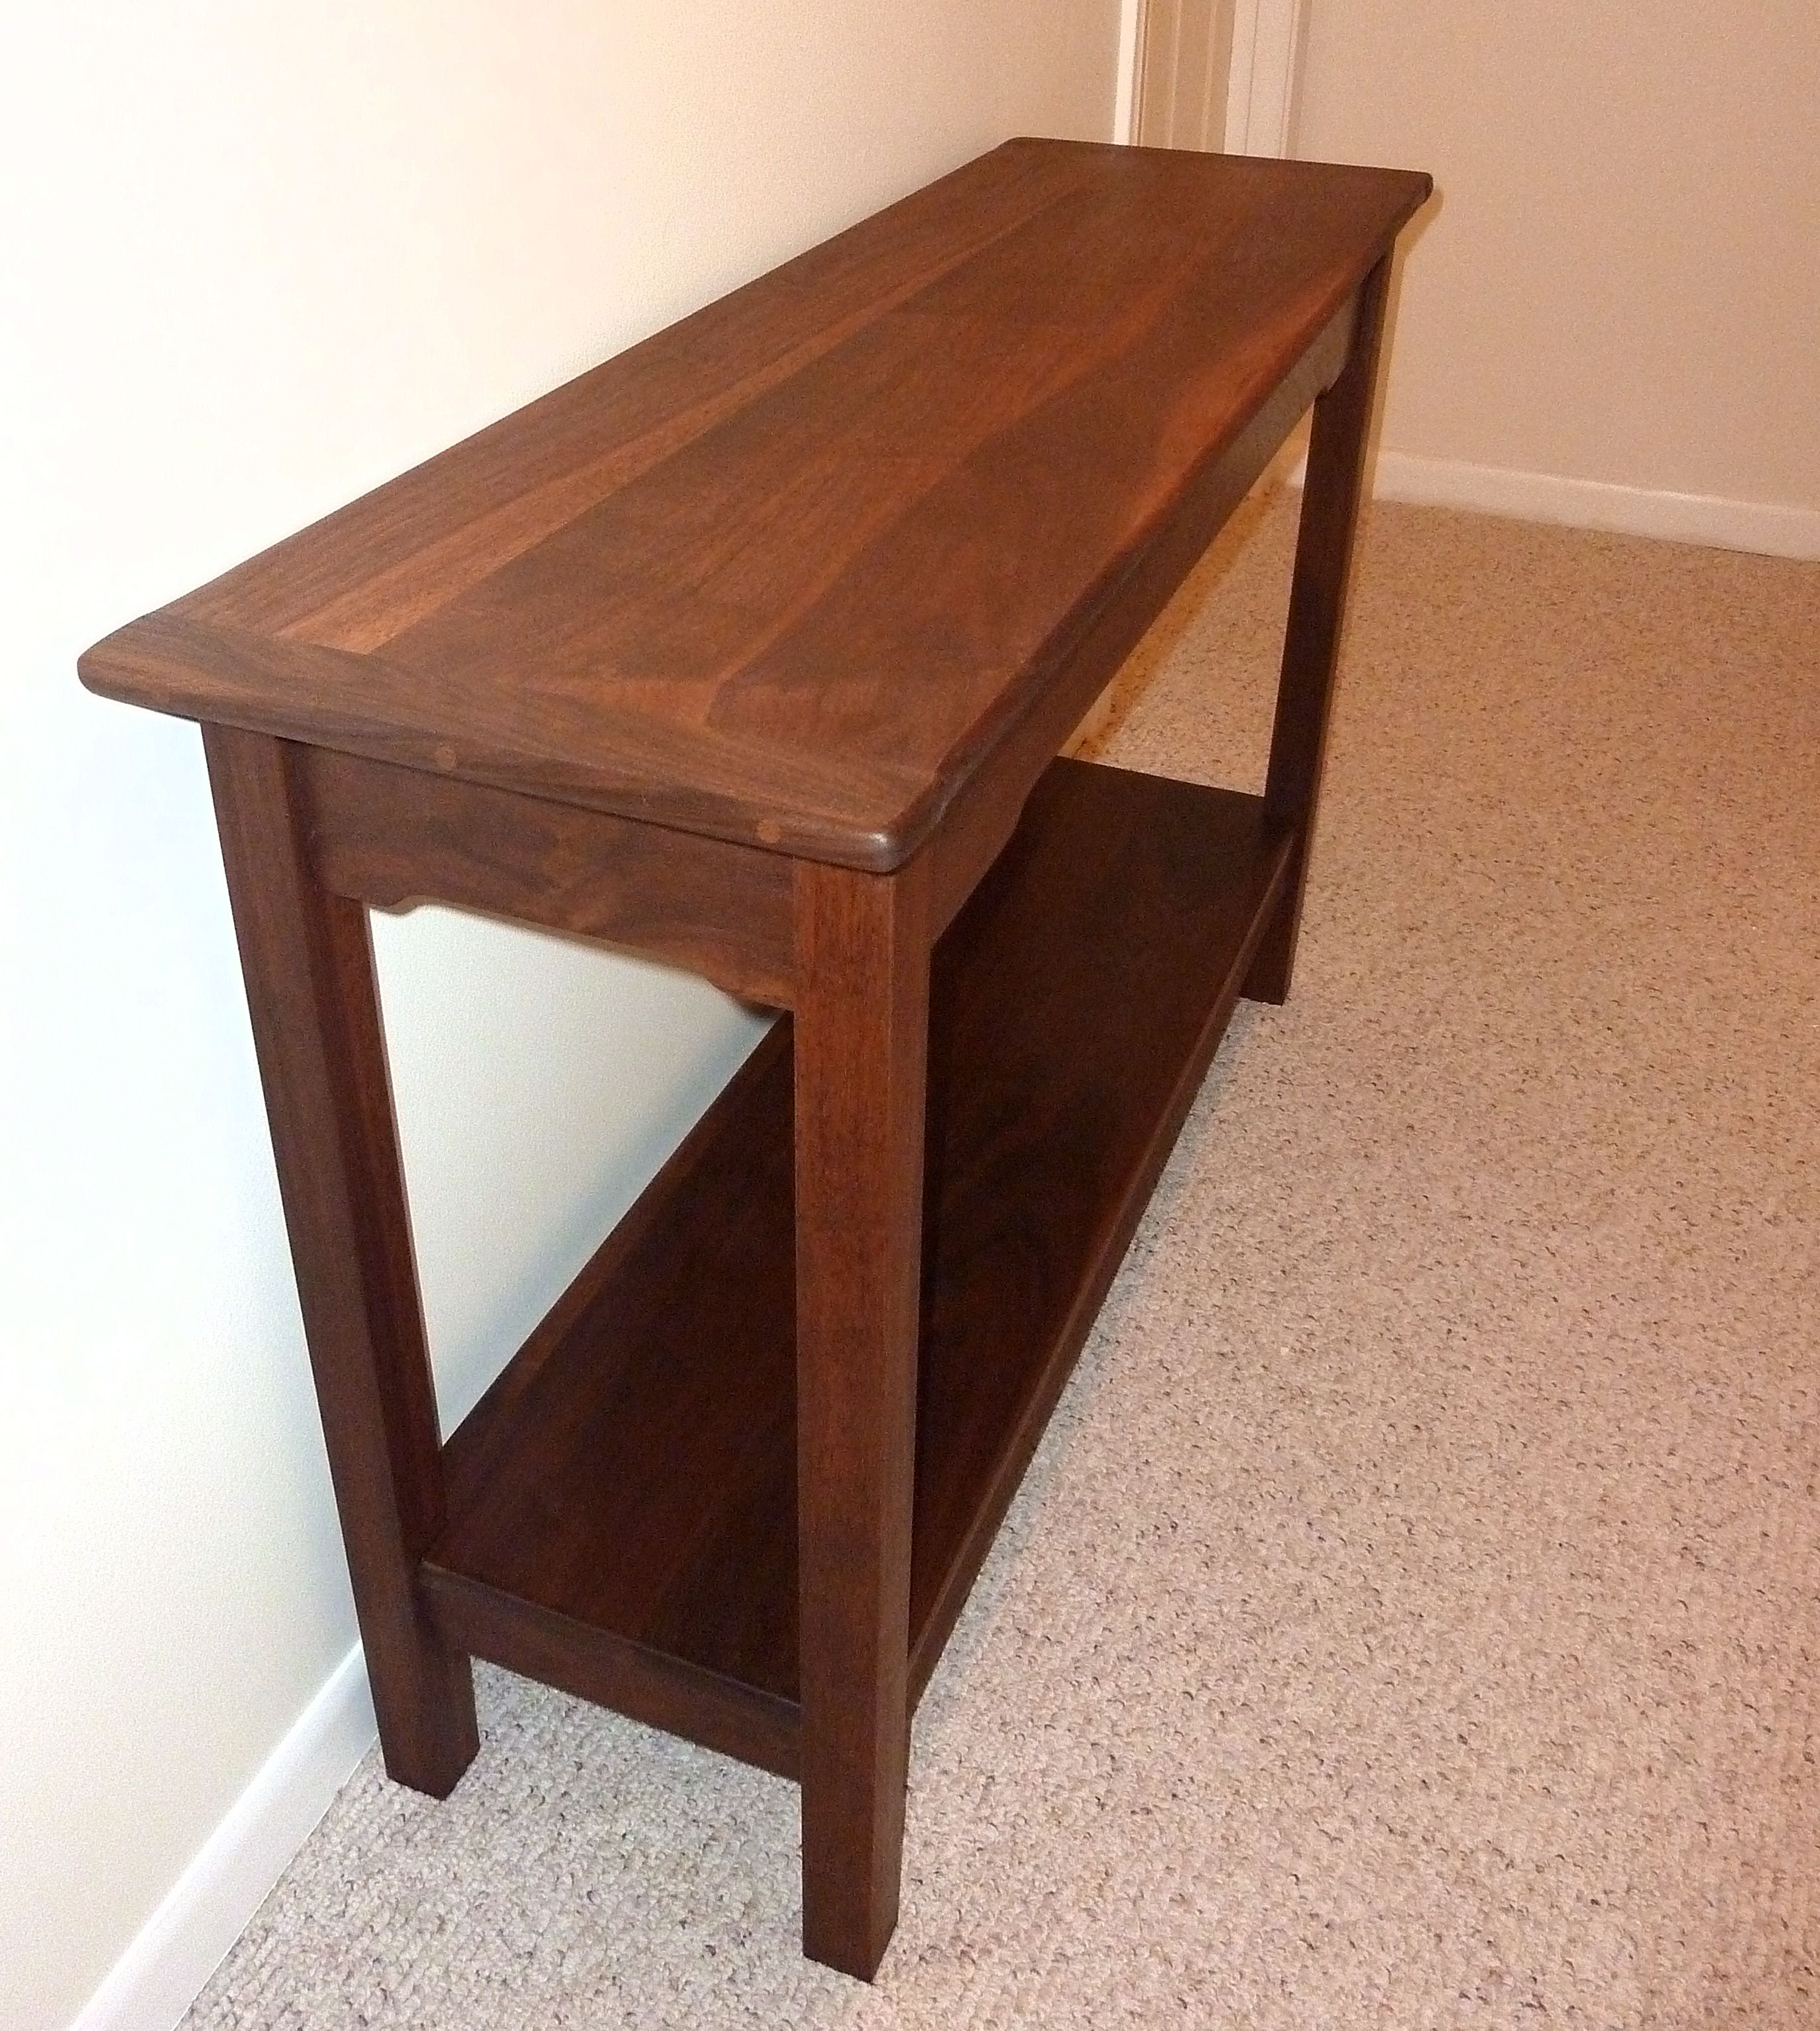 Buy A Hand Made Walnut Arts And Crafts Hall Table Made To Order